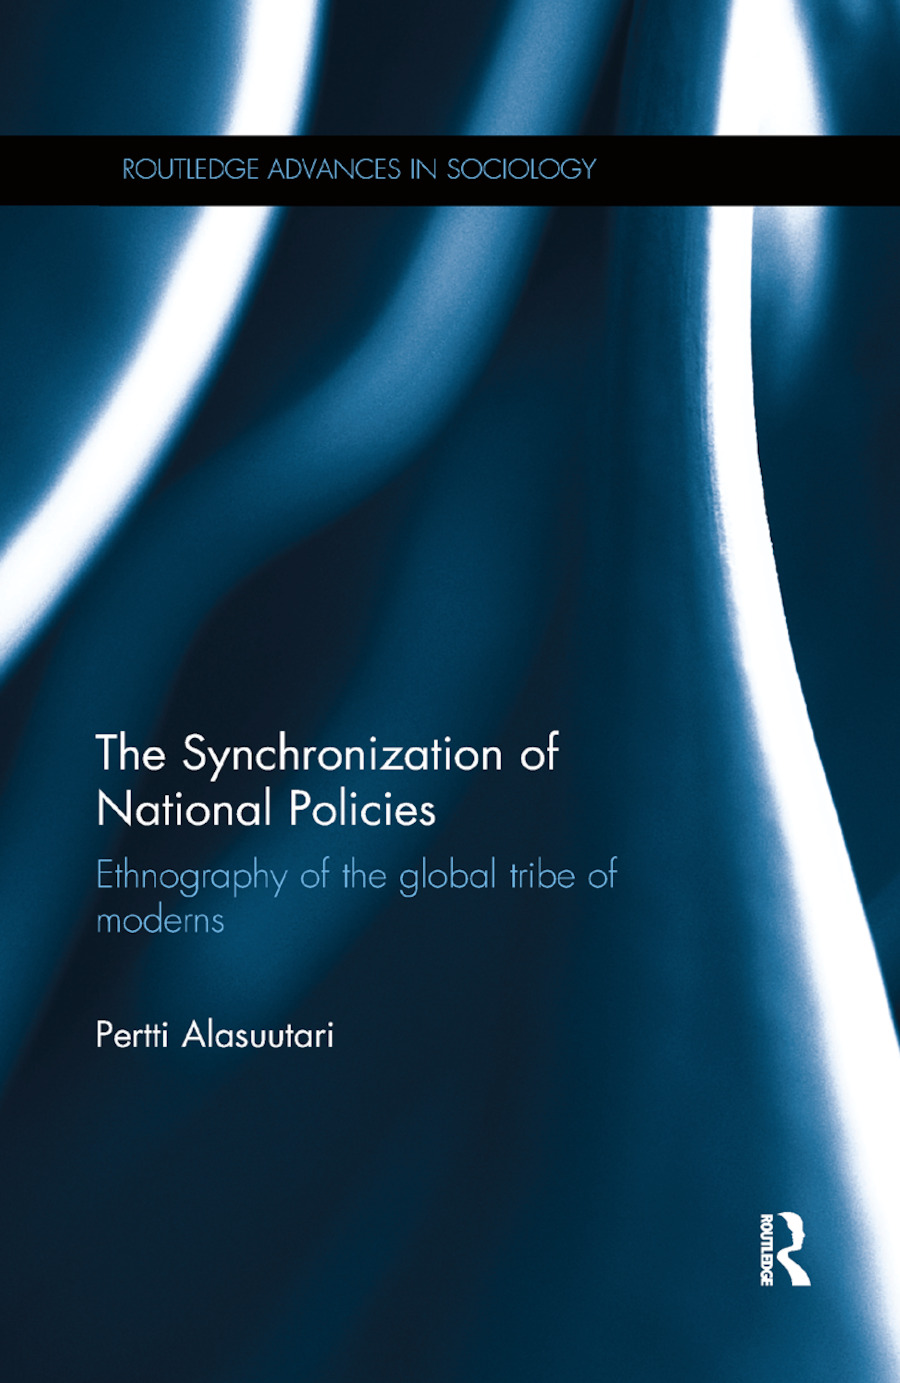 The Synchronization of National Policies